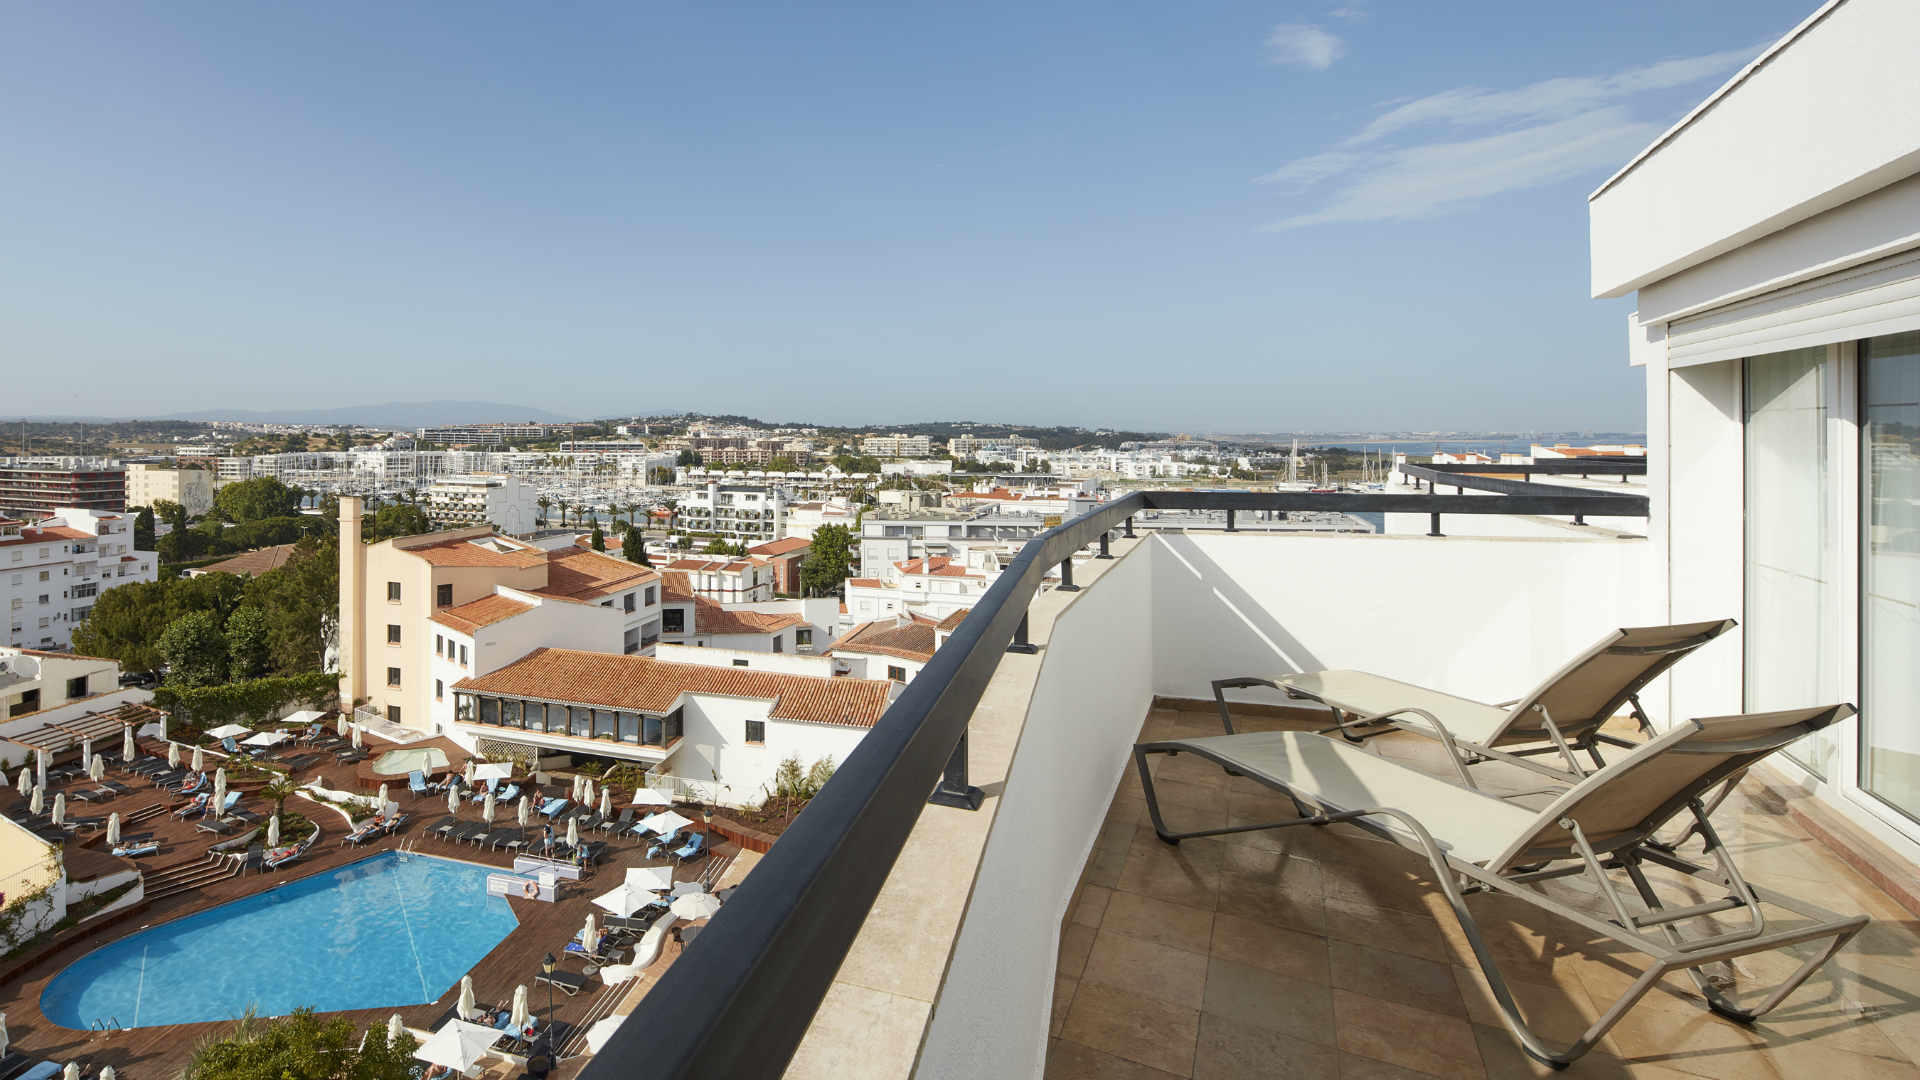 Tivoli Hotels In The Algarve Tivoli Lagos Algarve Hotel Gha